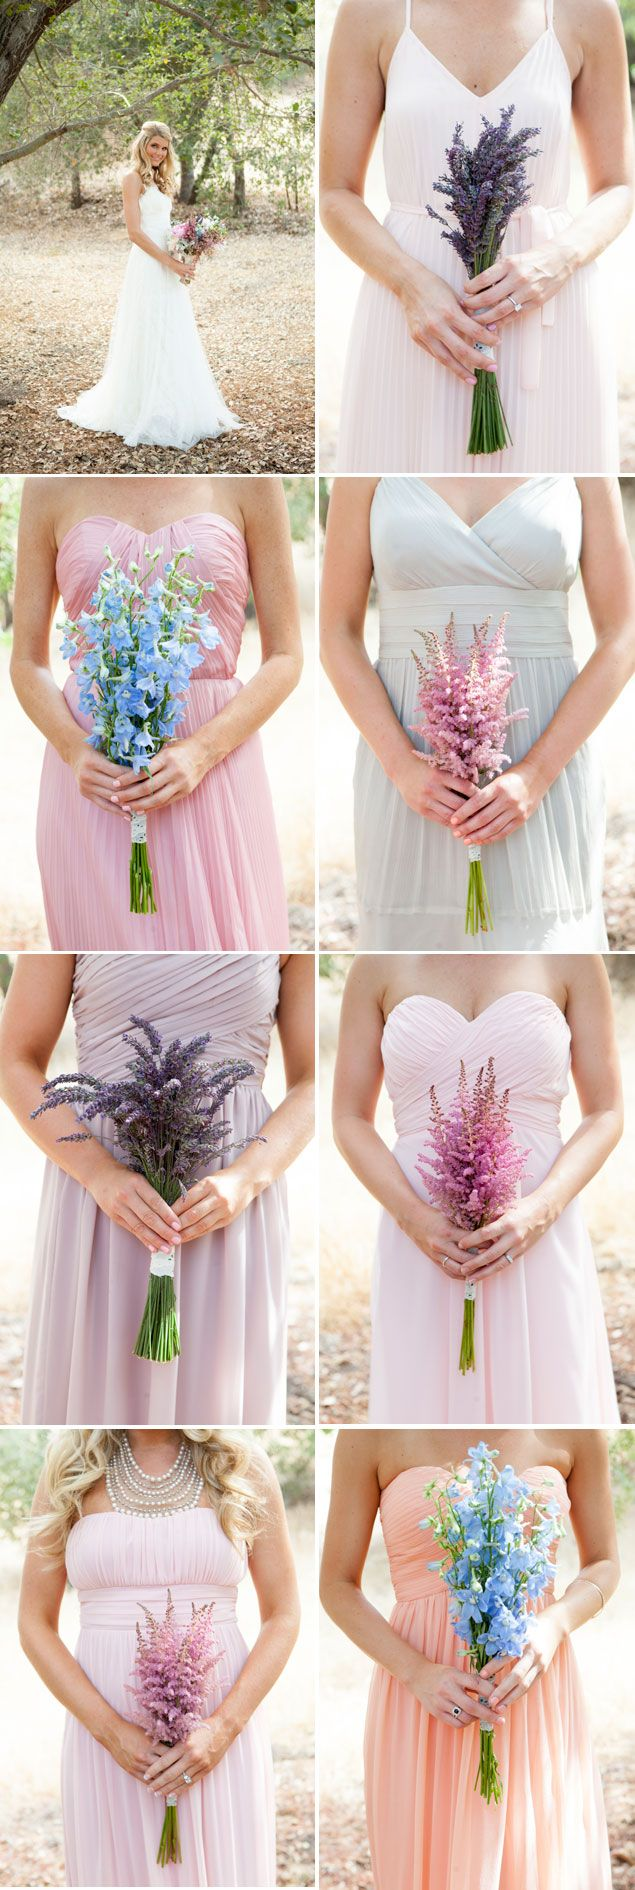 Mix-matched Bridesmaid Bouquets in Pastels PHOTO SOURCE • KRISTEN BEINKE PHOTOGRAPHY